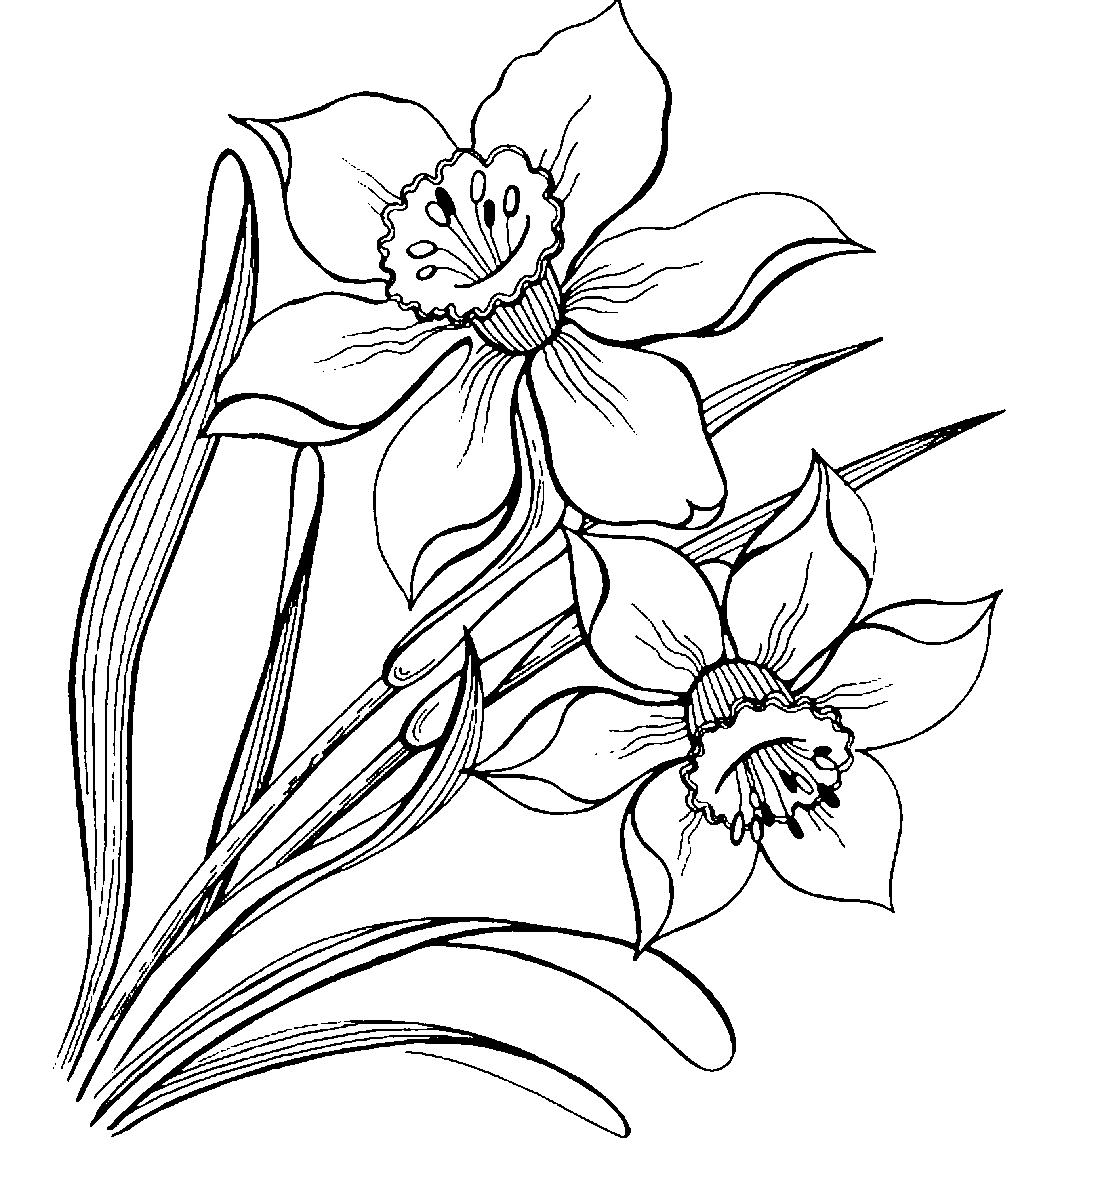 Narcissus coloring pages to download and print for free